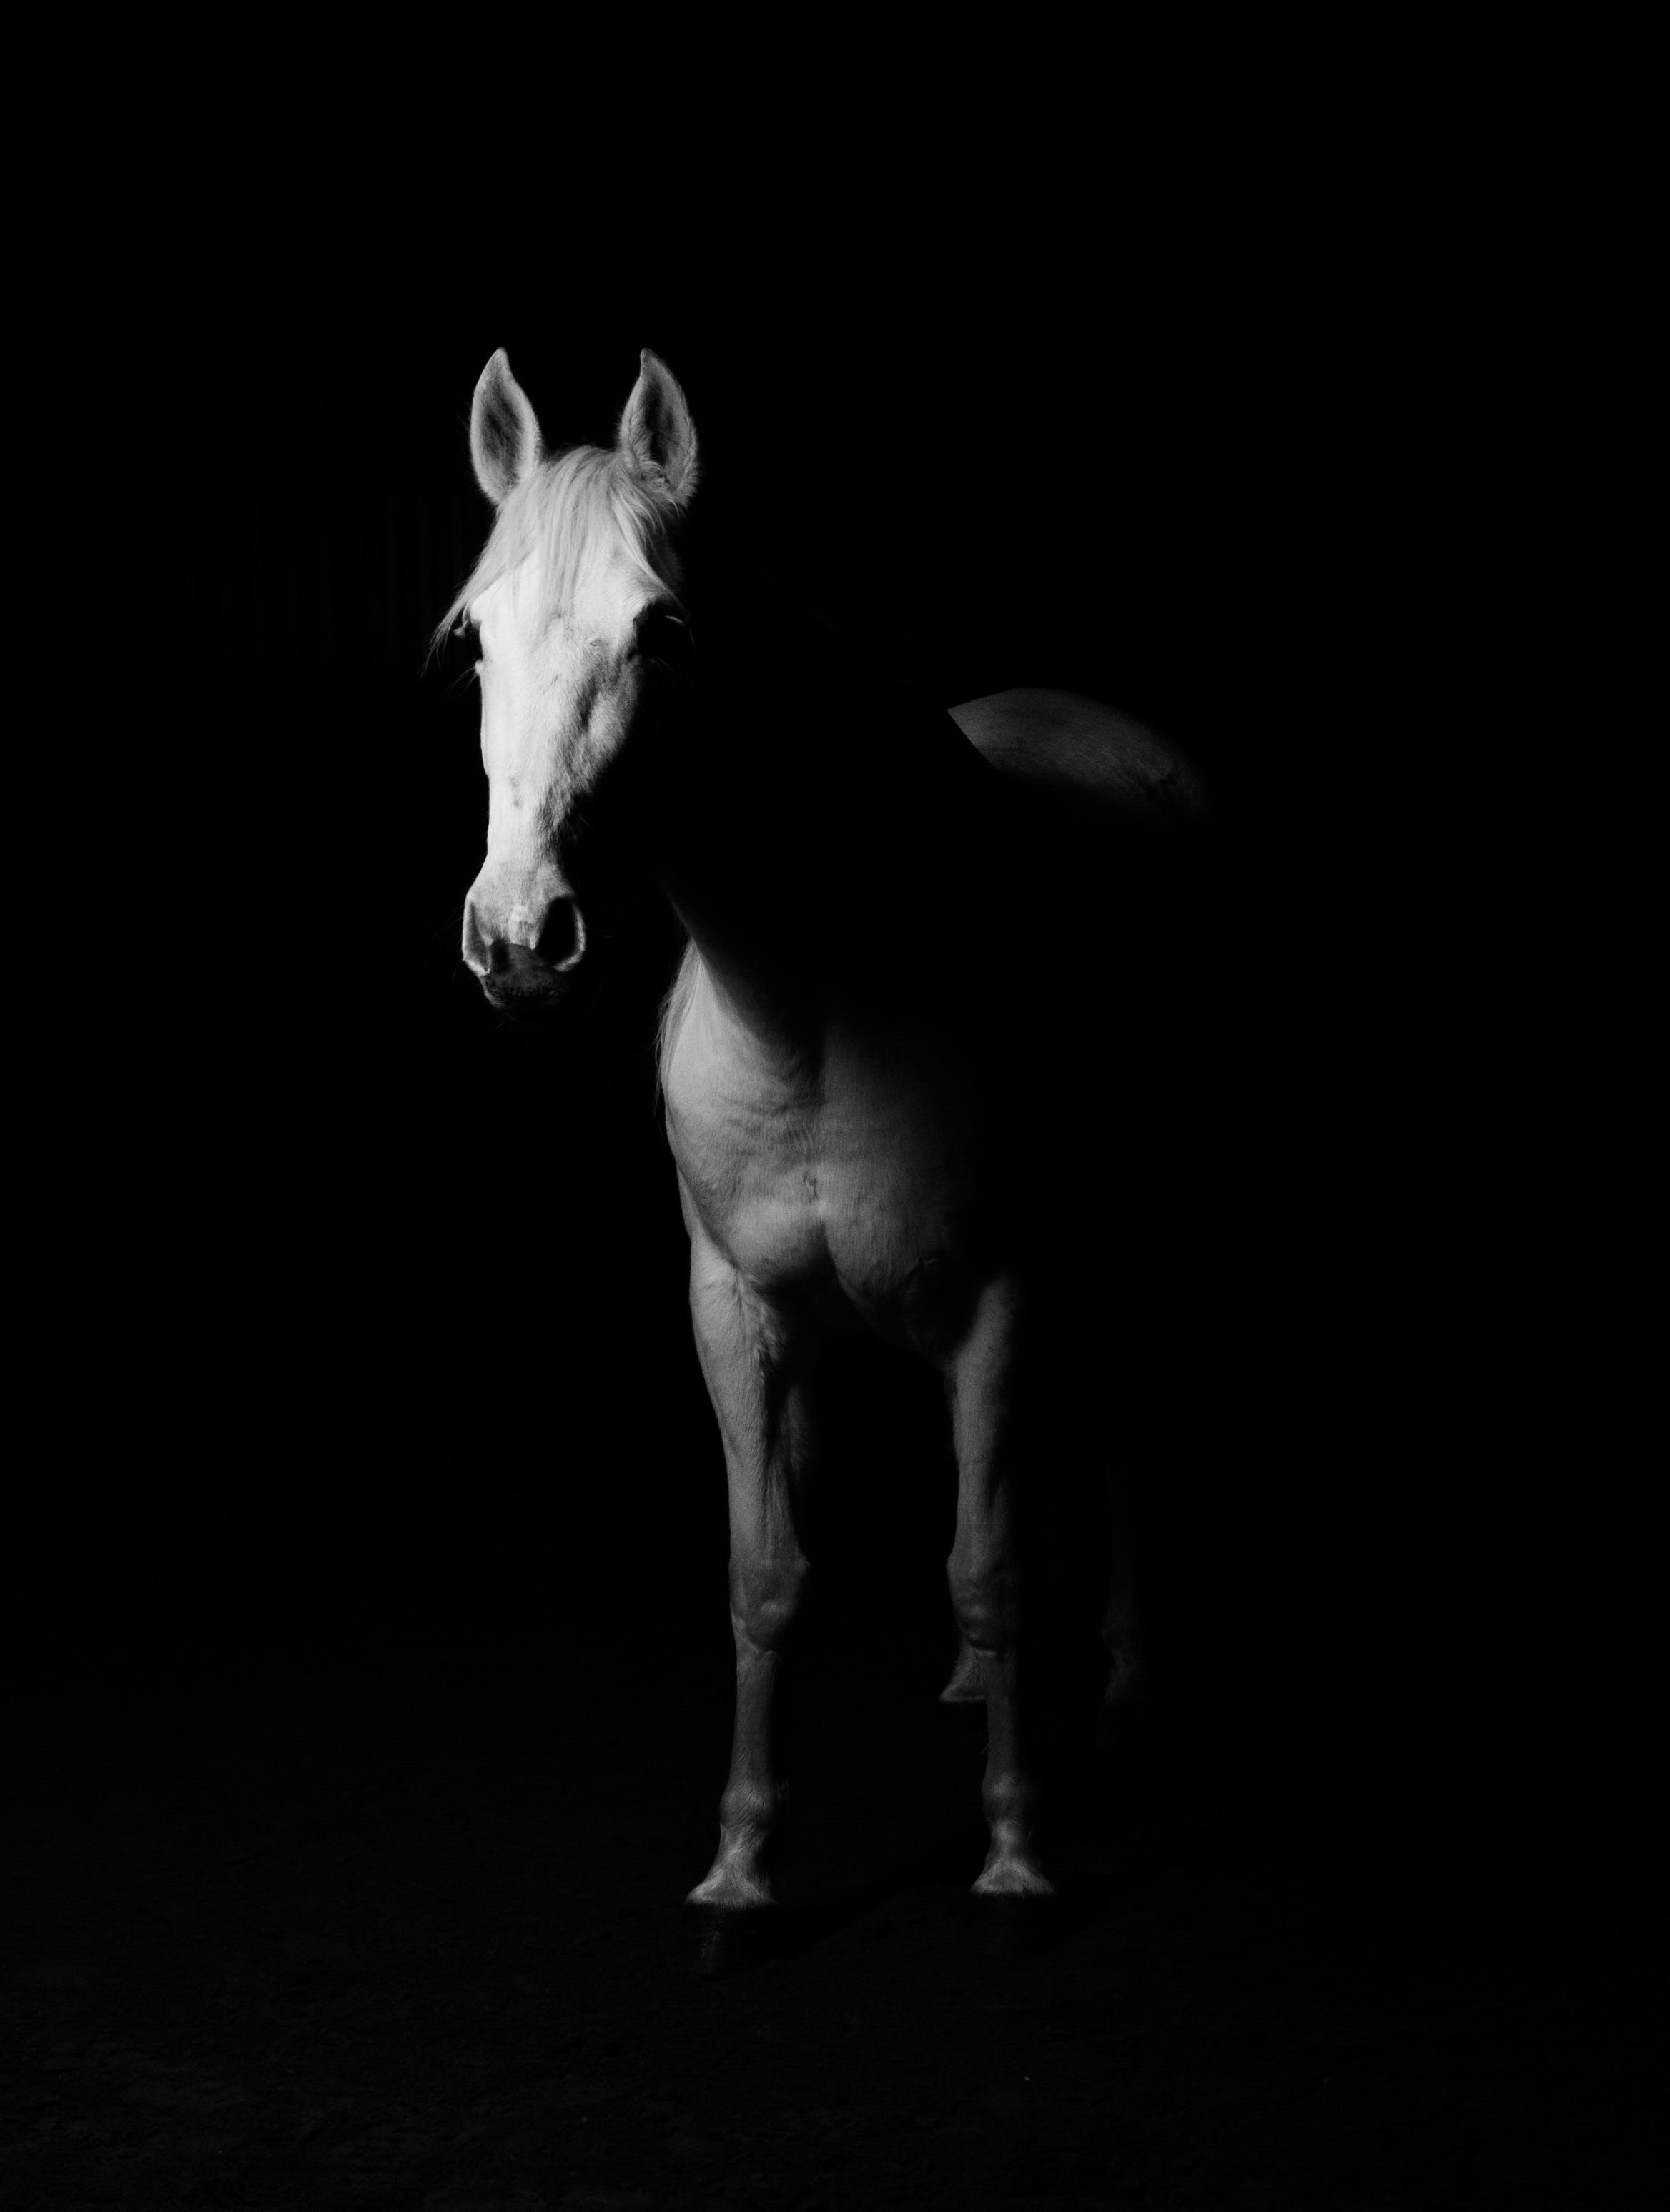 White Horse Black and White Photo